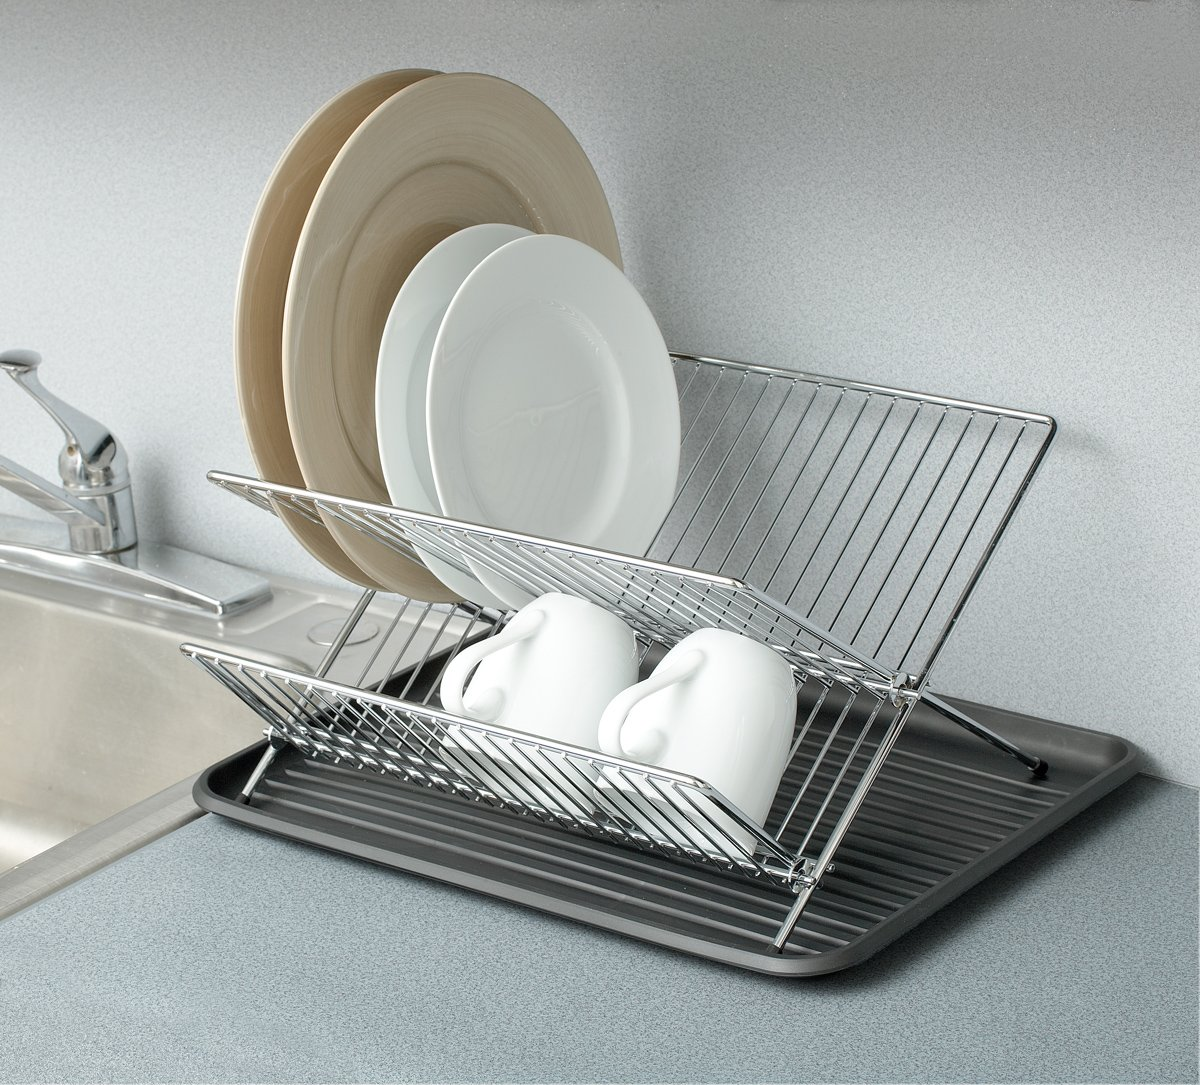 pro mart dazz chrome folding dish drainer with plastic drain board new free s ebay. Black Bedroom Furniture Sets. Home Design Ideas